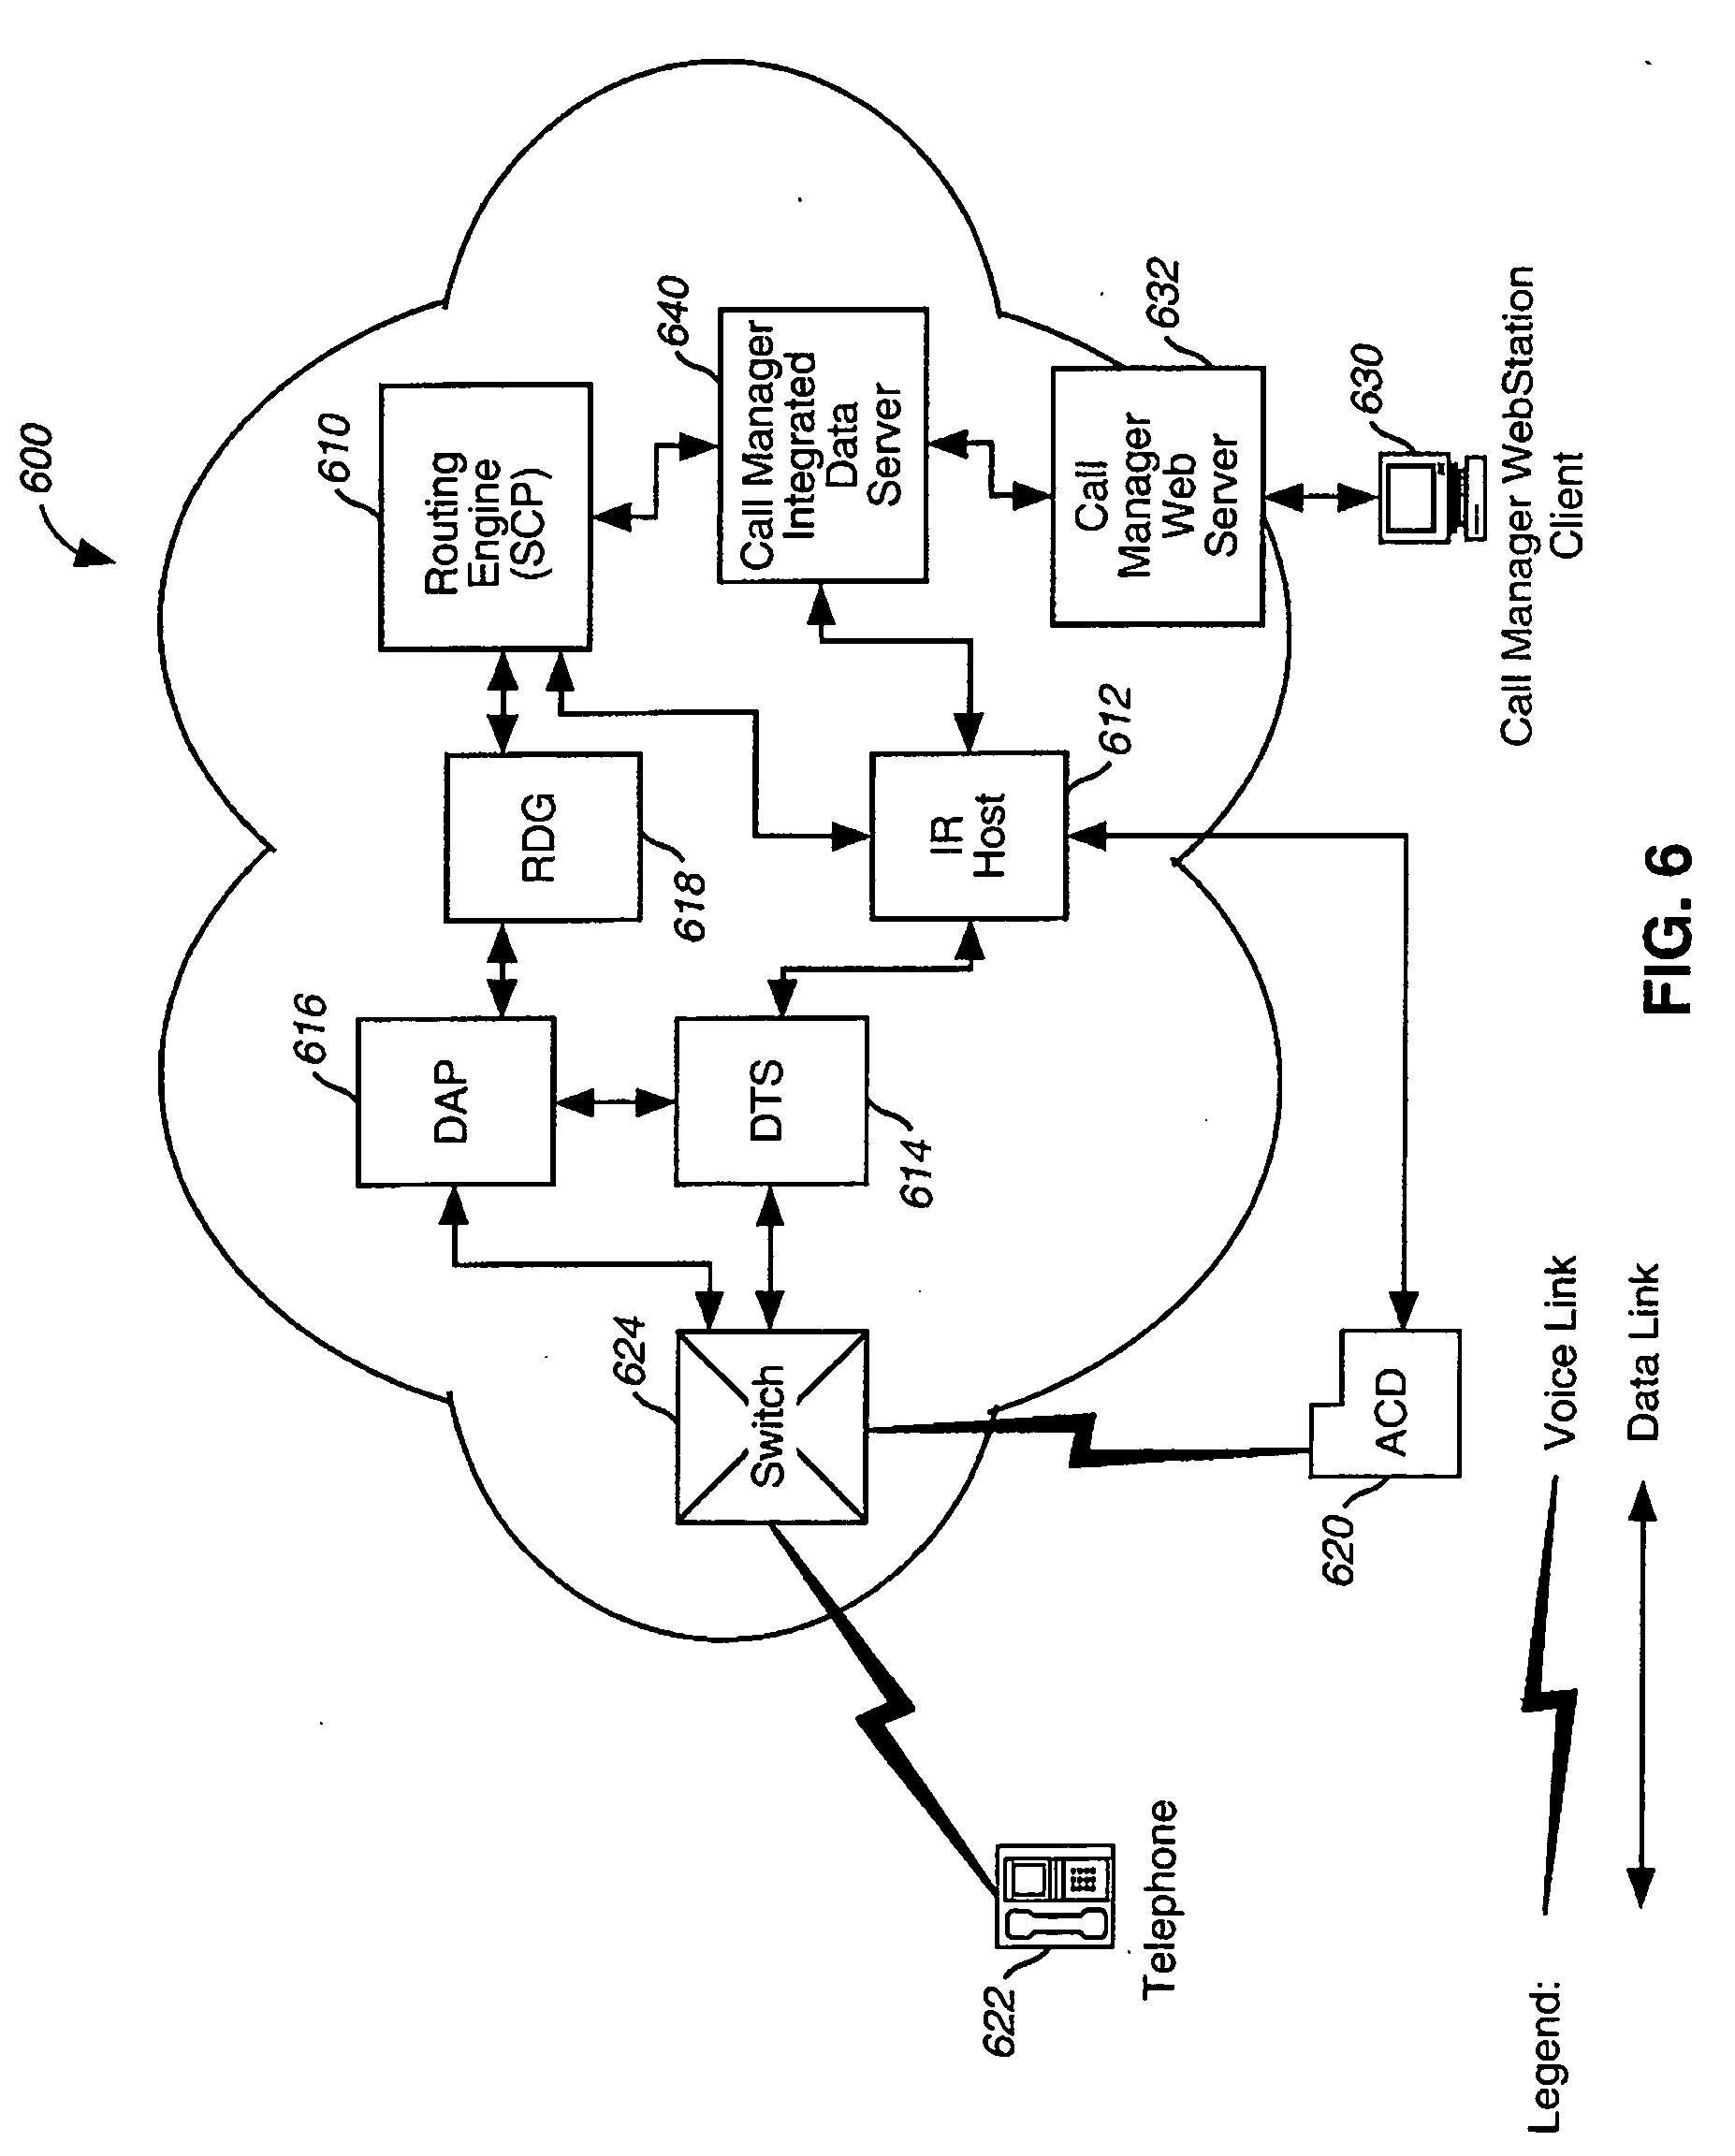 Us20060098583a1 integrated customer web station for web based call management patents